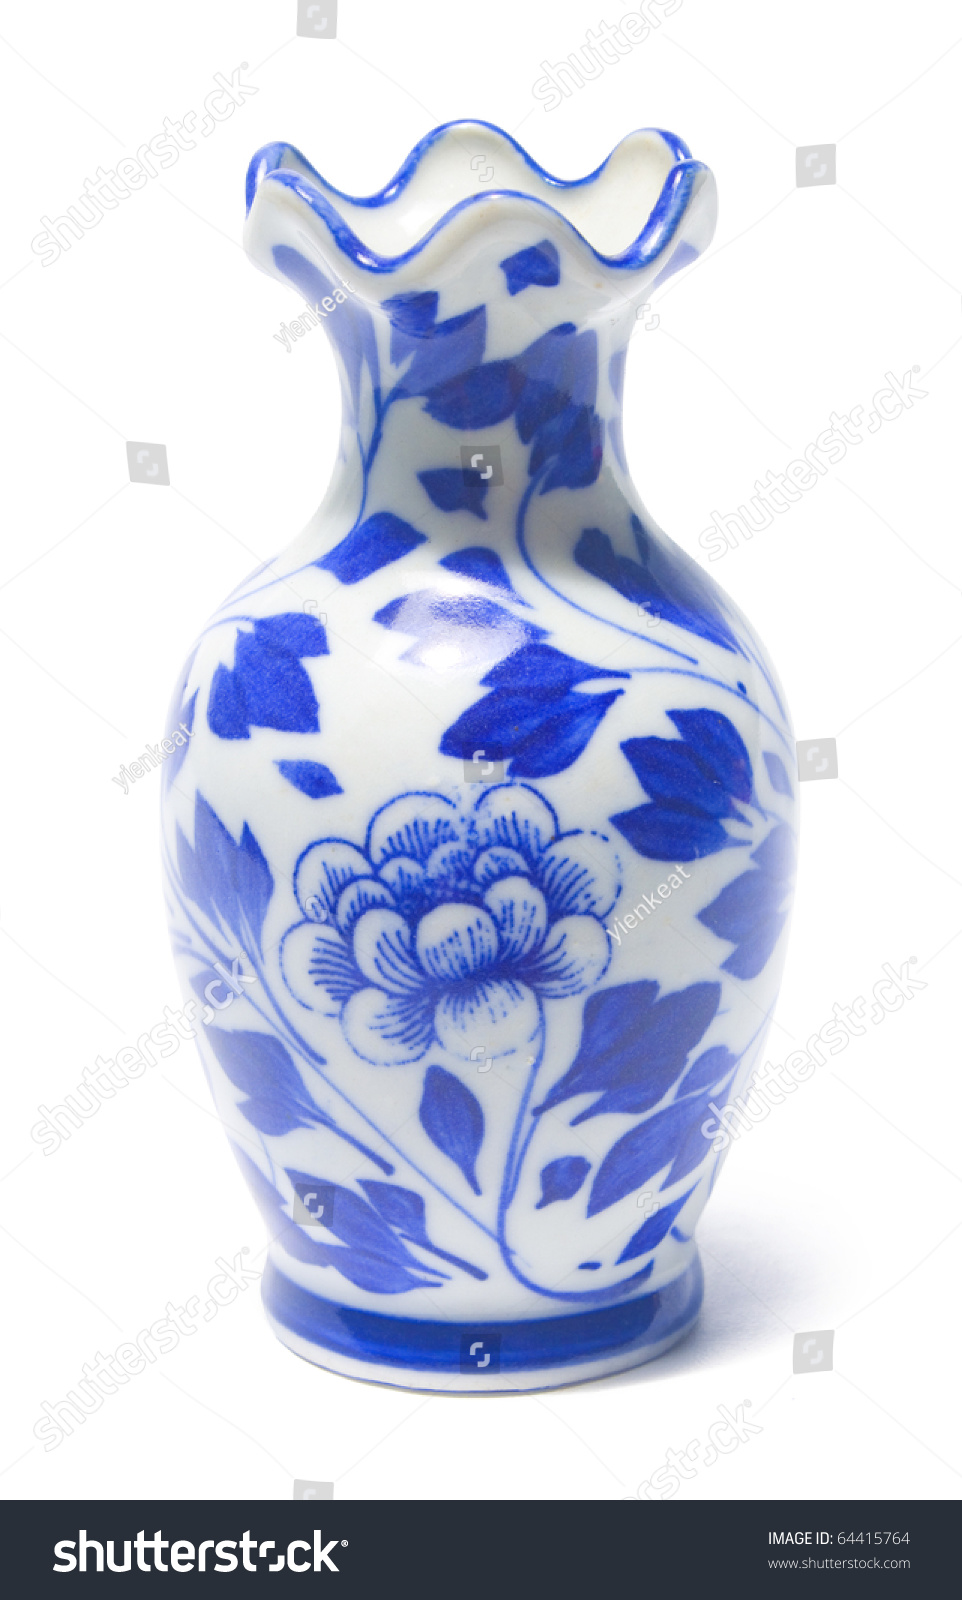 Chinese antique vase clipping path included stock photo 64415764 chinese antique vase clipping path included reviewsmspy